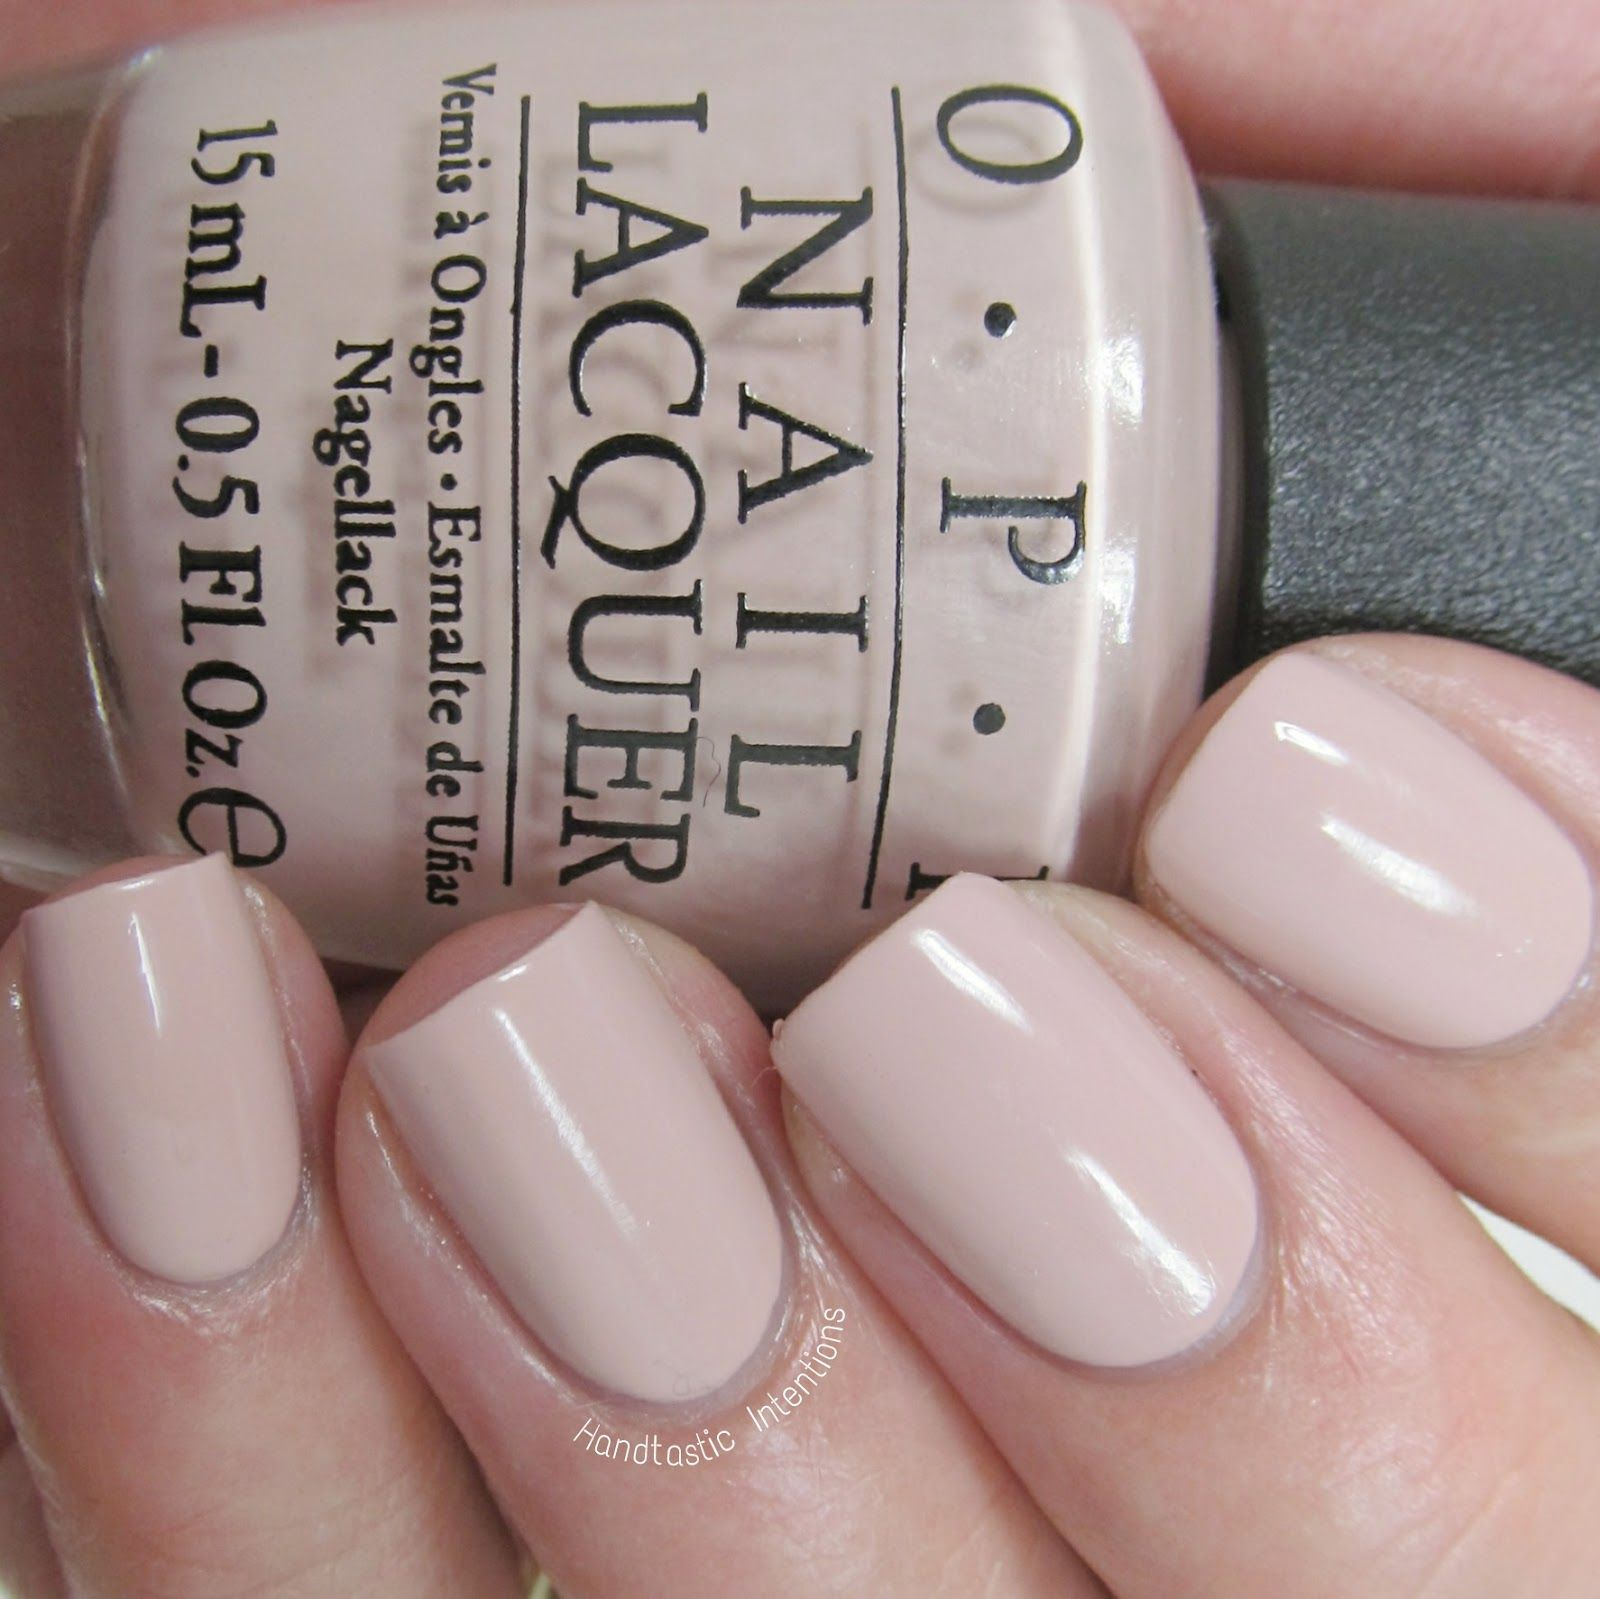 Handtastic Intentions: OPI Venice Collection Tiramisu for Two ...